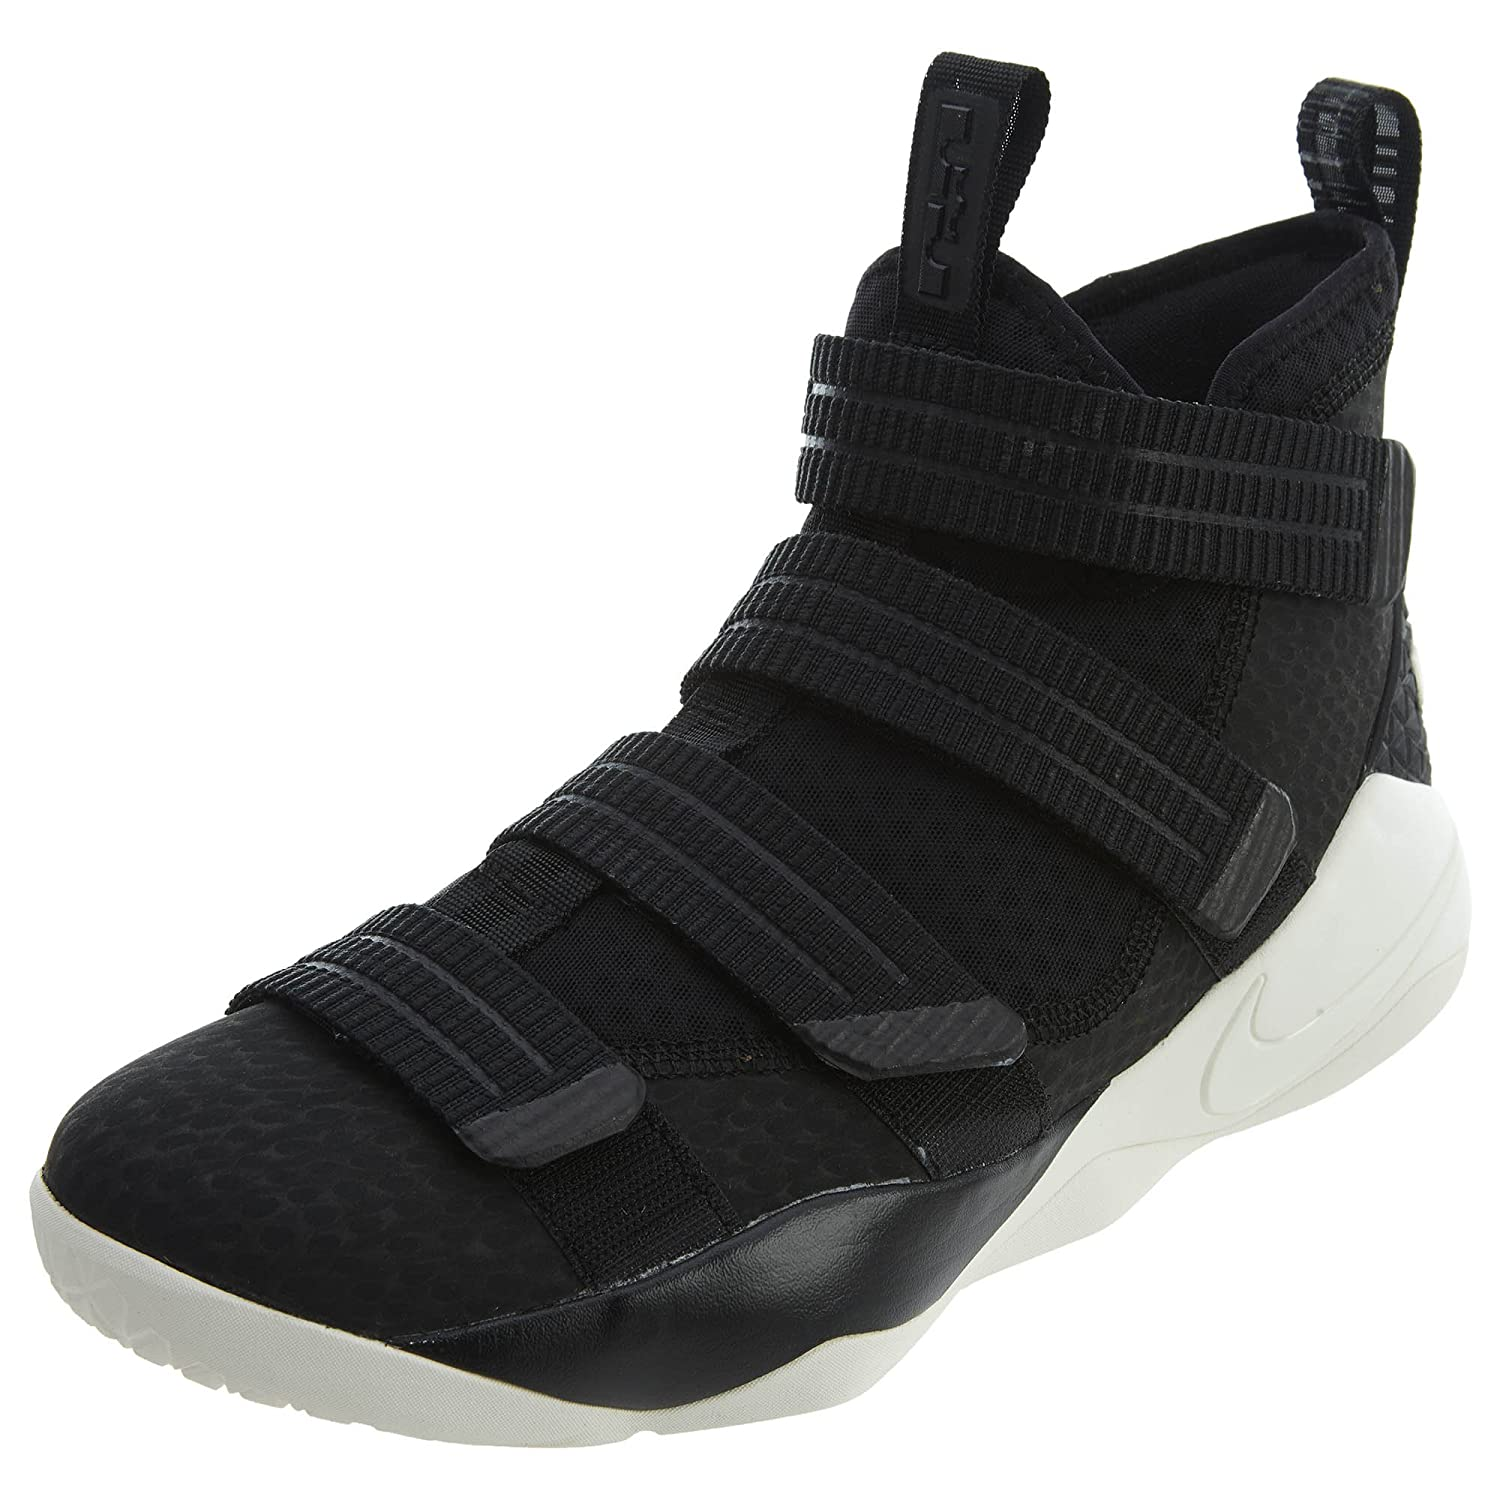 Mr/Ms NIKE Men's Lebron Basketball Soldier Ix Mid-Top Basketball Lebron Shoe Economical and practical Impeccable Great choice RB24856 efc32e